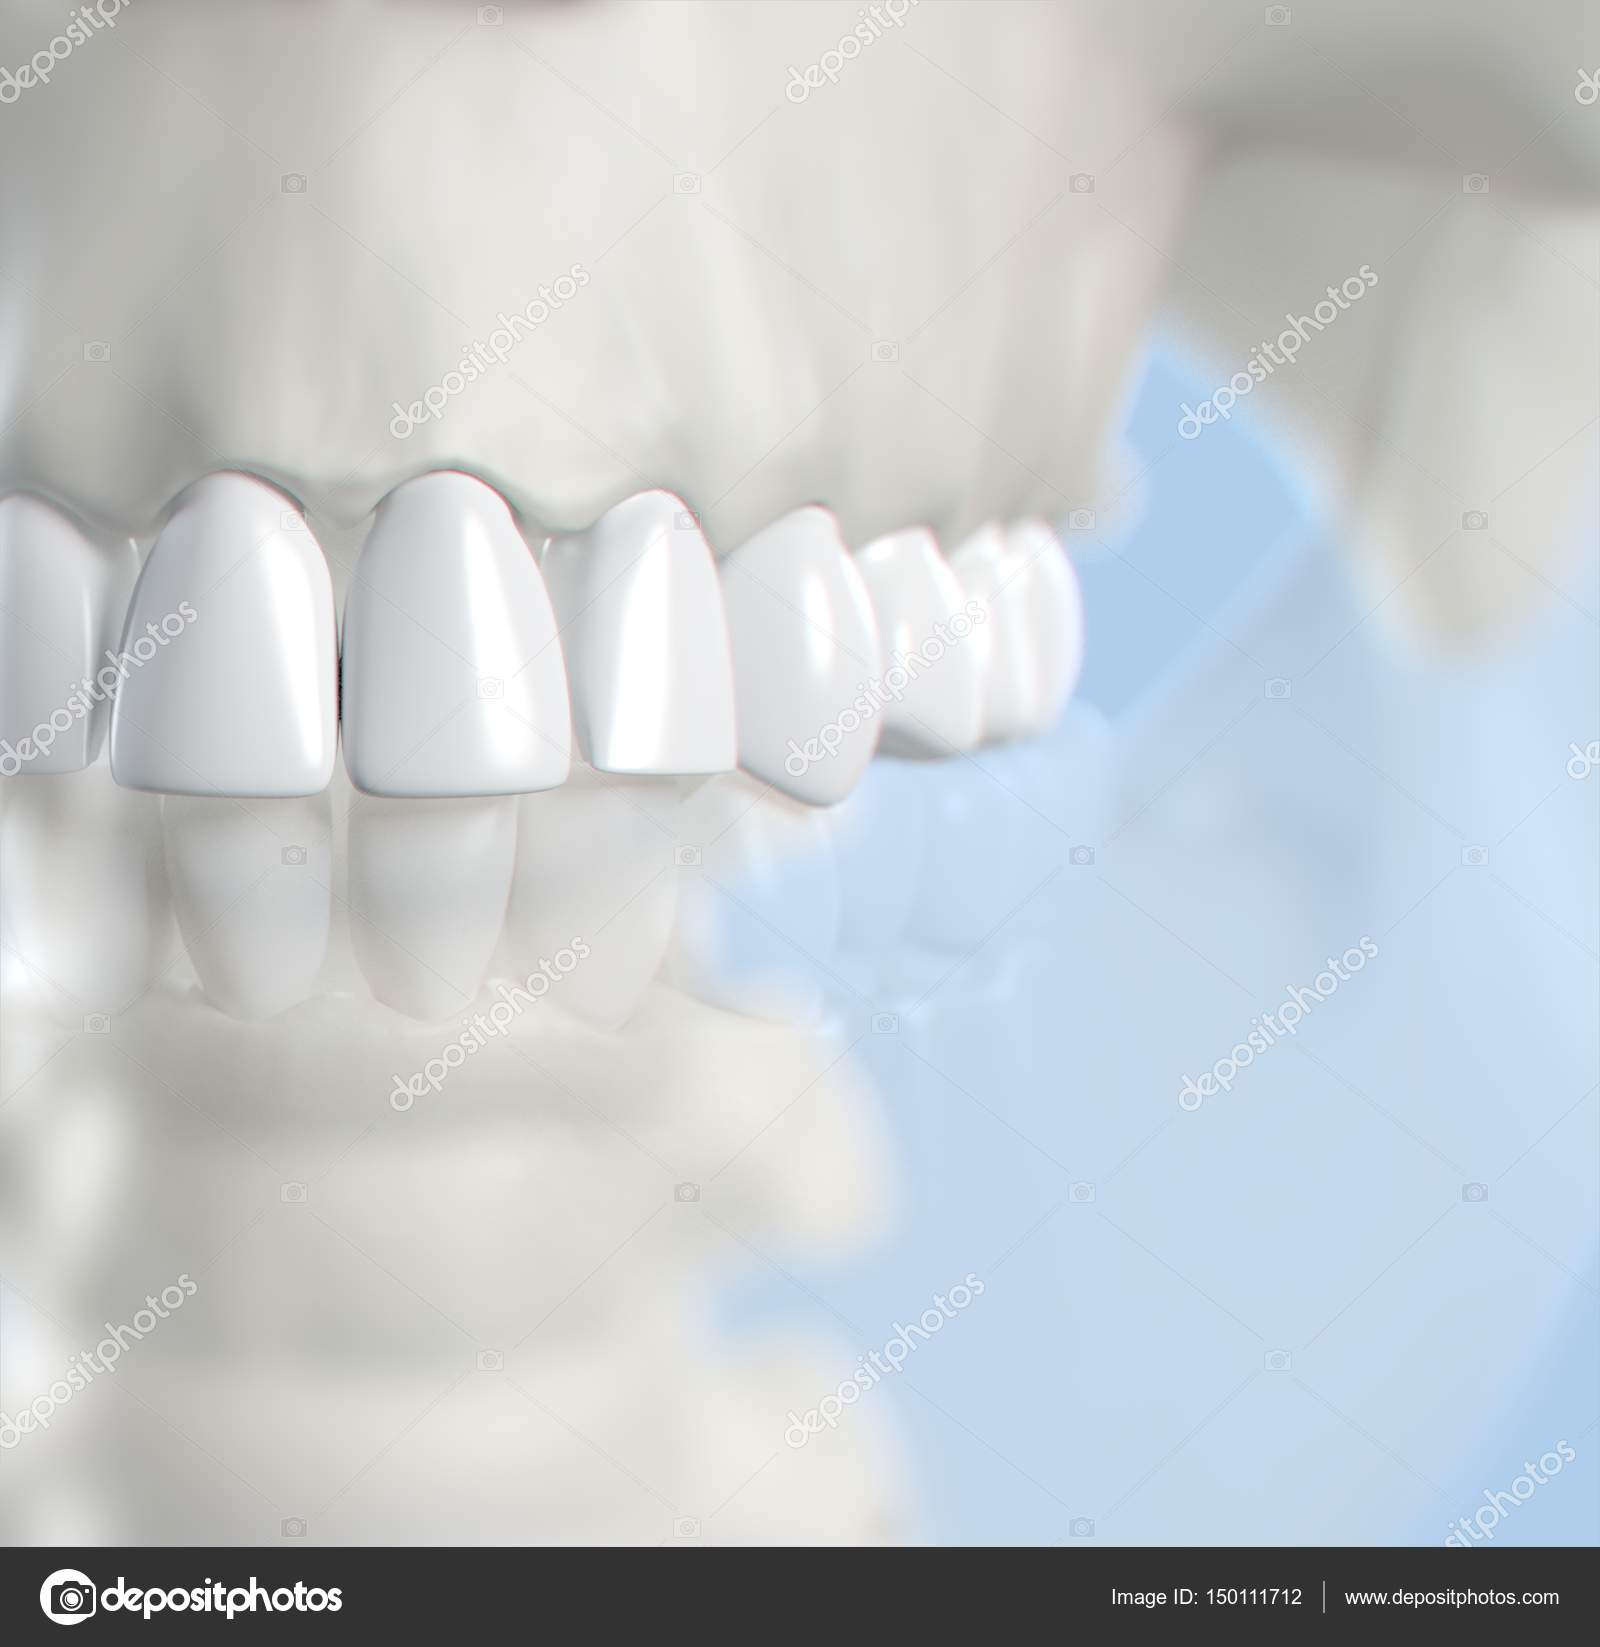 Human teeth anatomy model — Stock Photo © AnatomyInsider #150111712